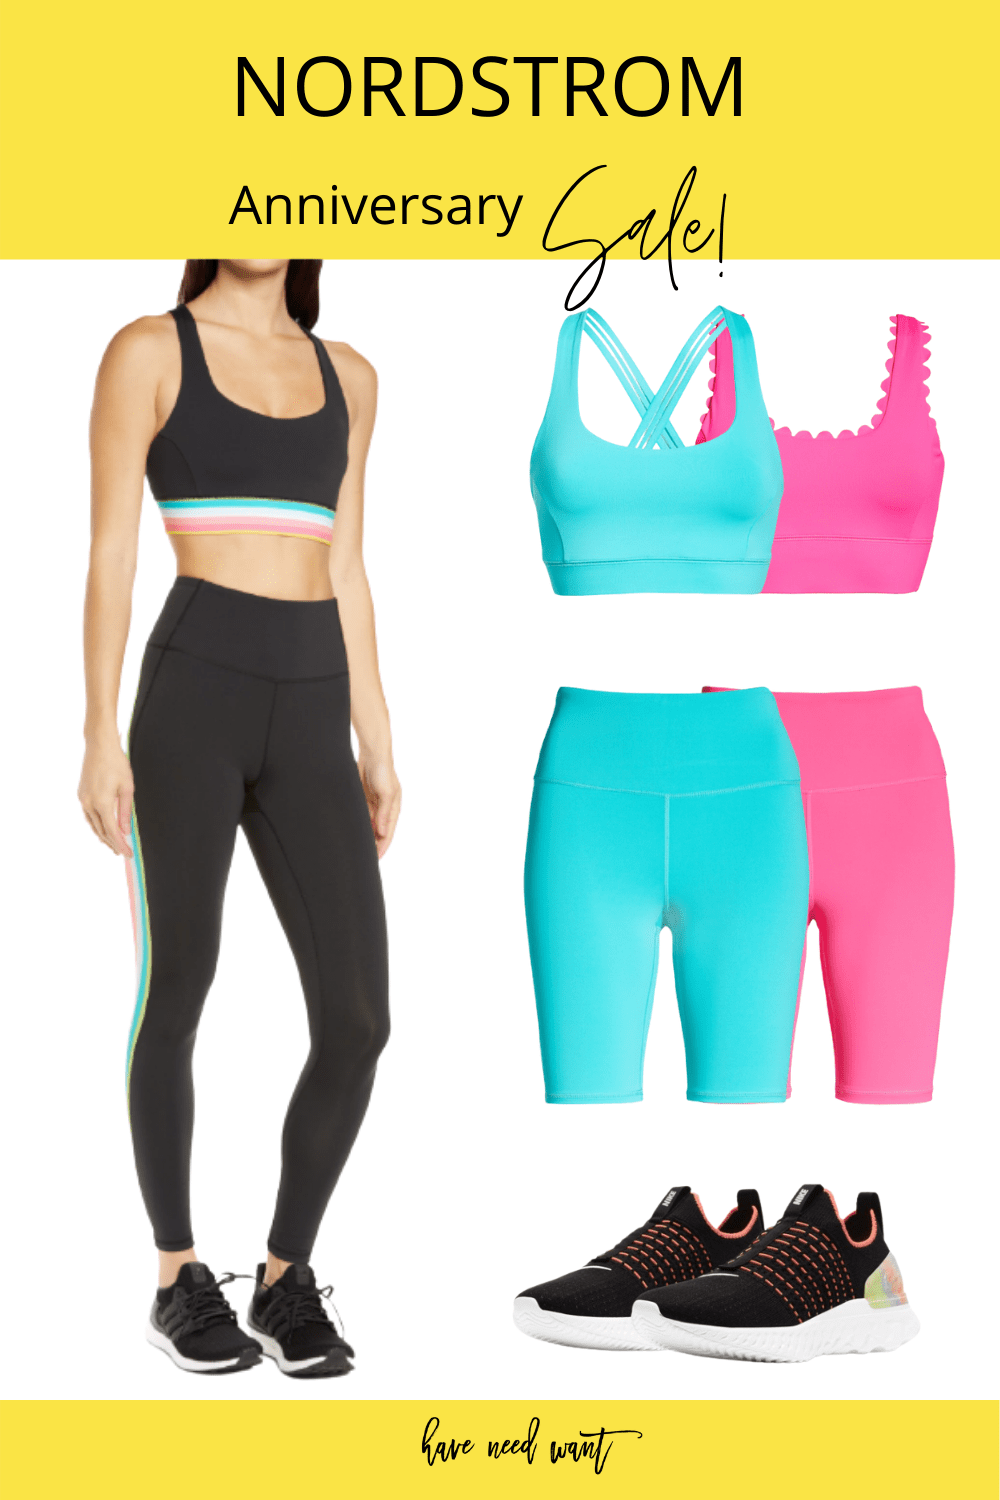 Fun fitness apparel to help motivate you to workout and feel your best!